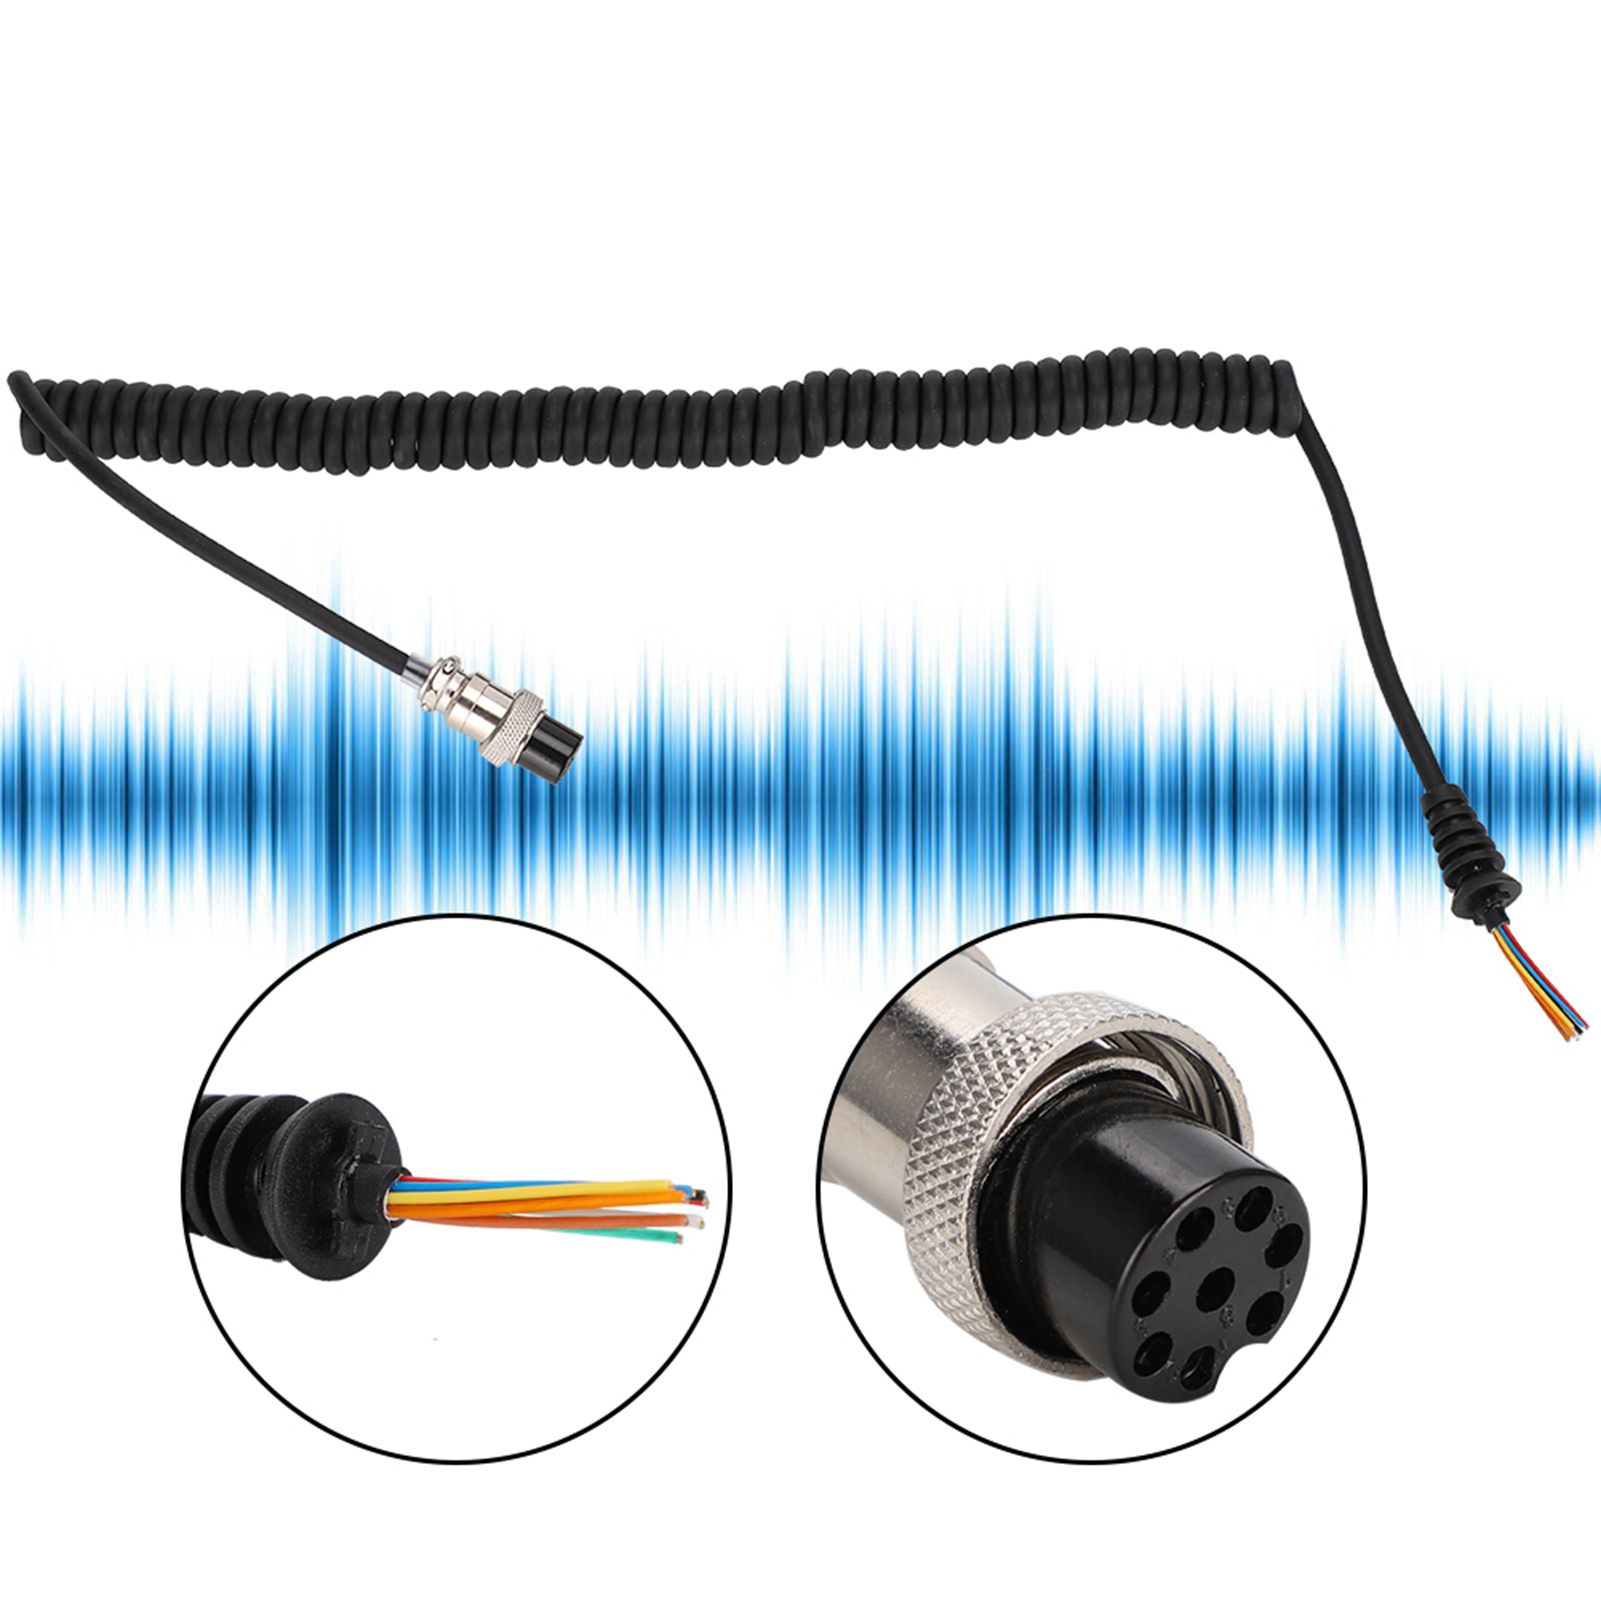 Microphone-Cable-Cord-8Pin-Compatible-w-Kenwood-TM-331A-TM-431A-TM-531A-TM-241A thumbnail 16